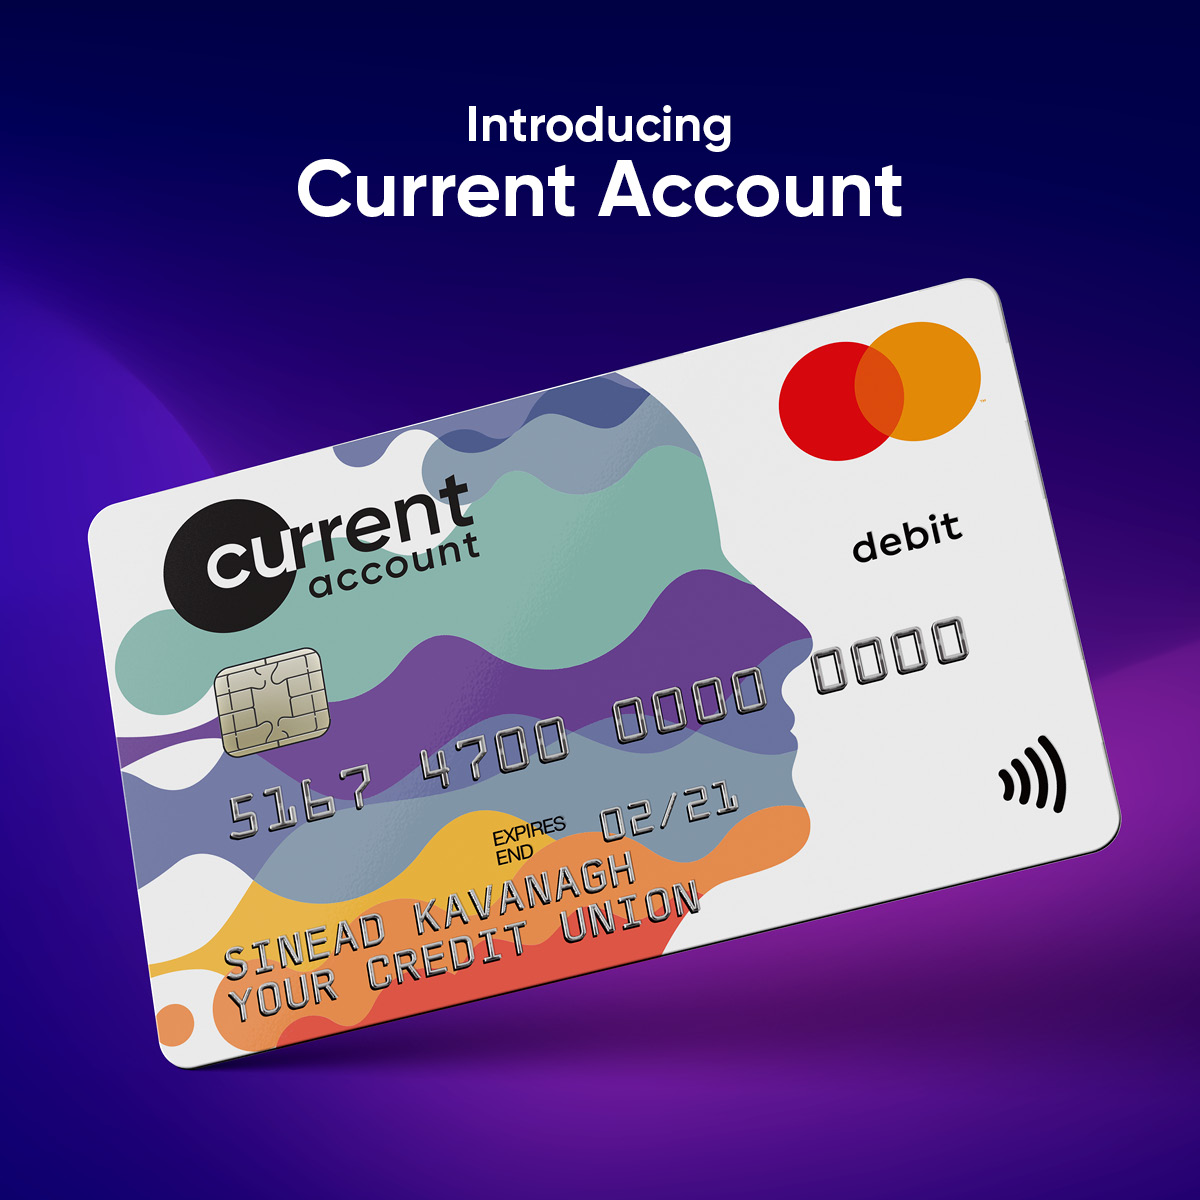 Introducing Current Account 2